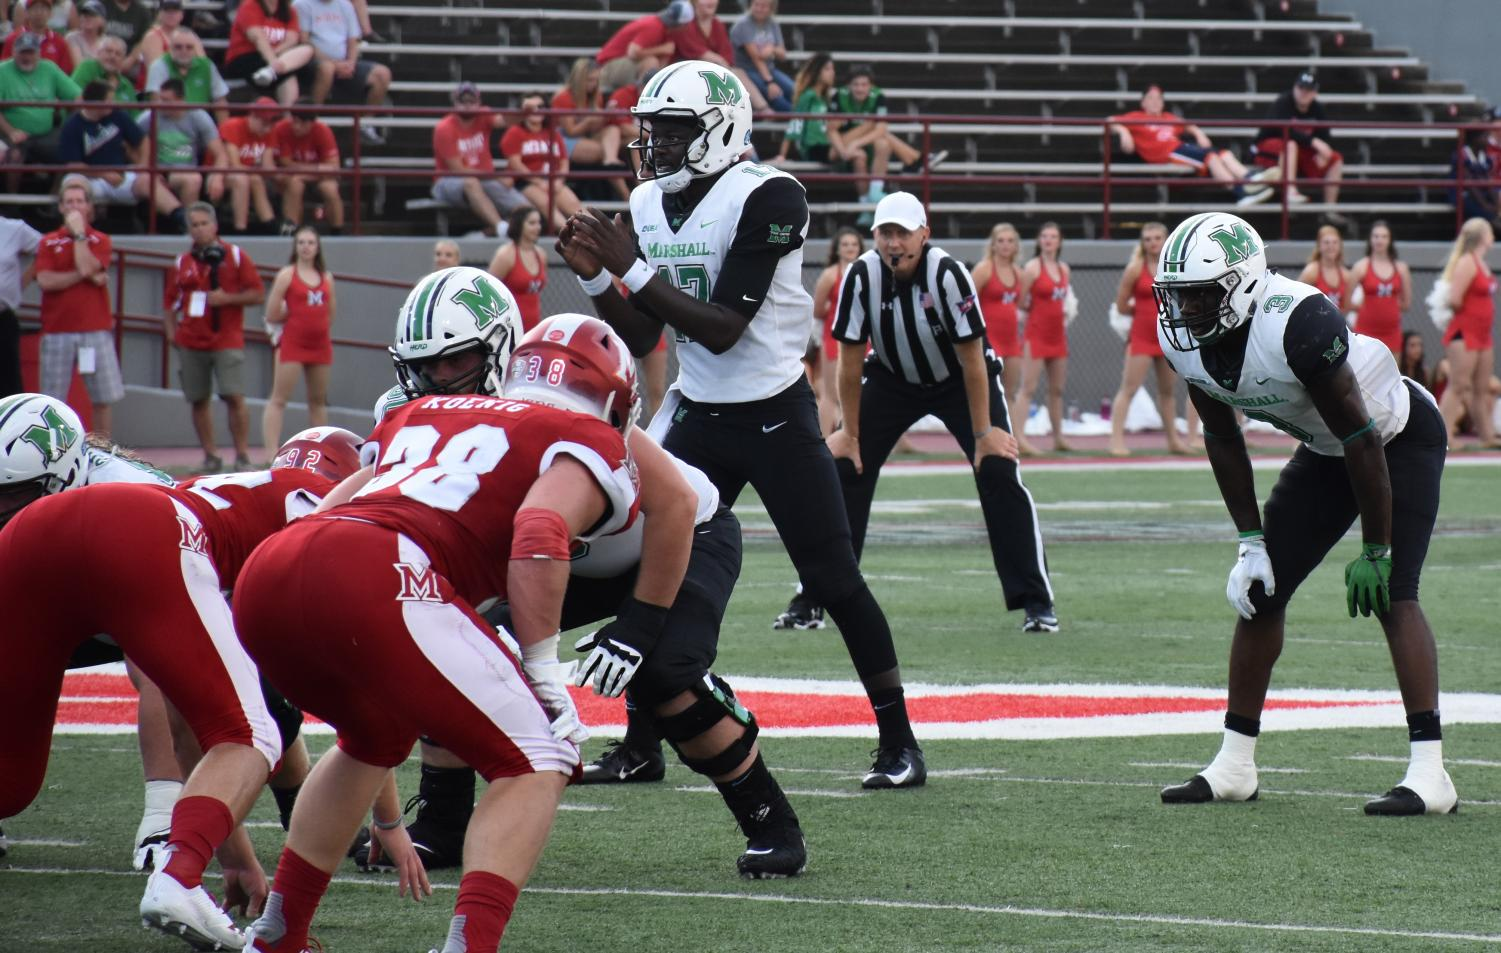 Redshirt freshman quarterback Isaiah Green (white jersey, left) prepares to take a snap under-center for the Herd next to redshirt sophomore running back Tyler King (white jersey, right). Green's youth is aided by an experienced backfield and receiving corps.